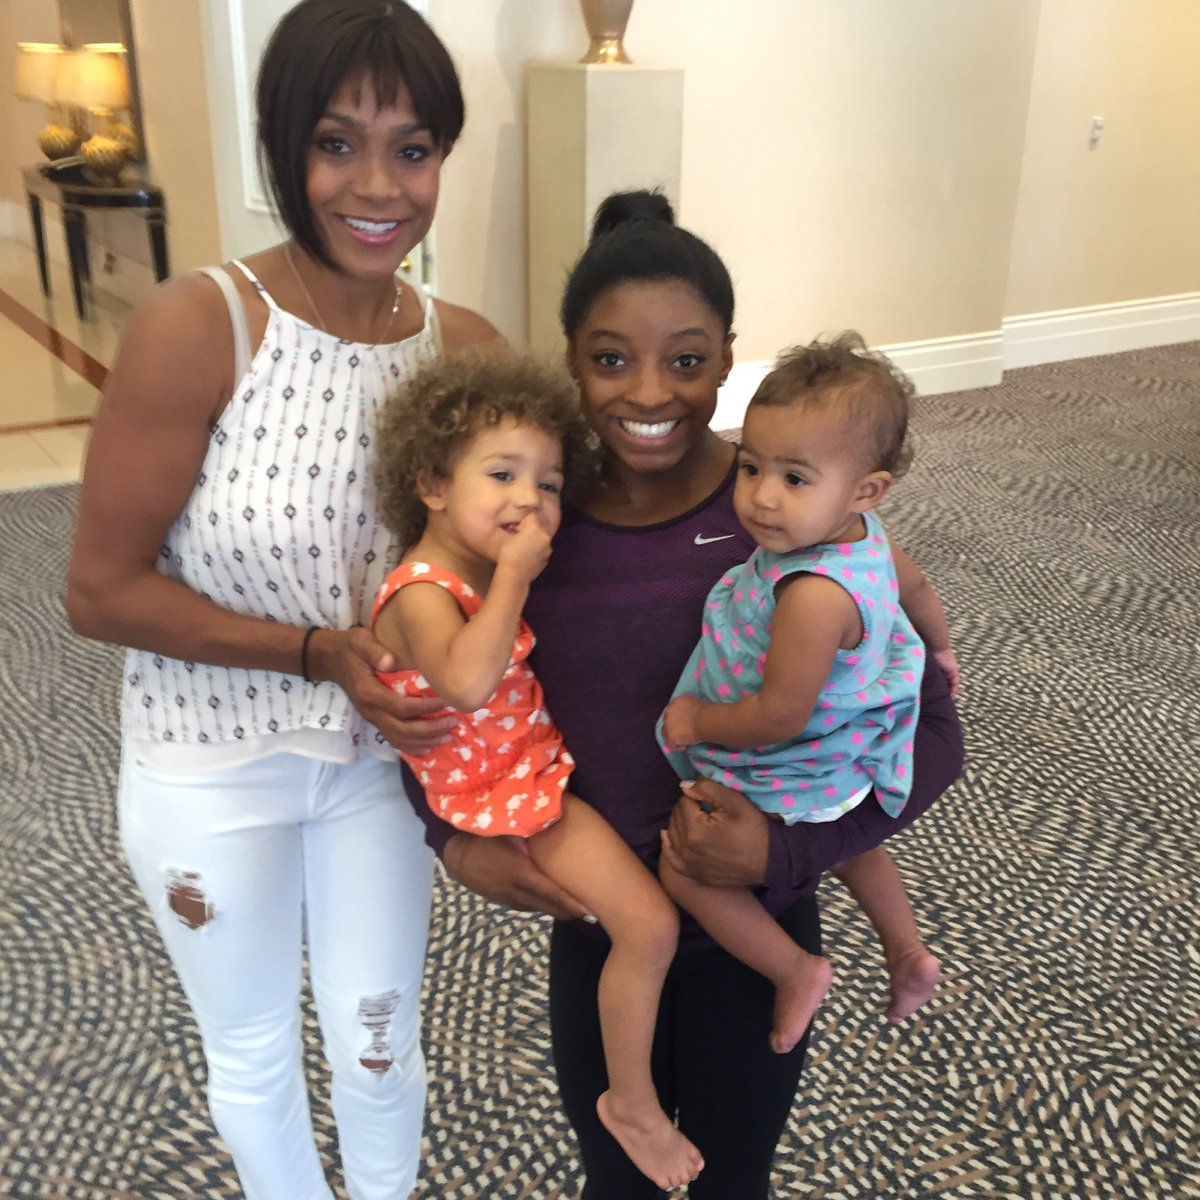 U @simonebiles r truly the #GOAT I'm blessed2have introduced my girls2u Enjoy the journey don't lose that smile @GMA https://t.co/jhbYX0CZFw